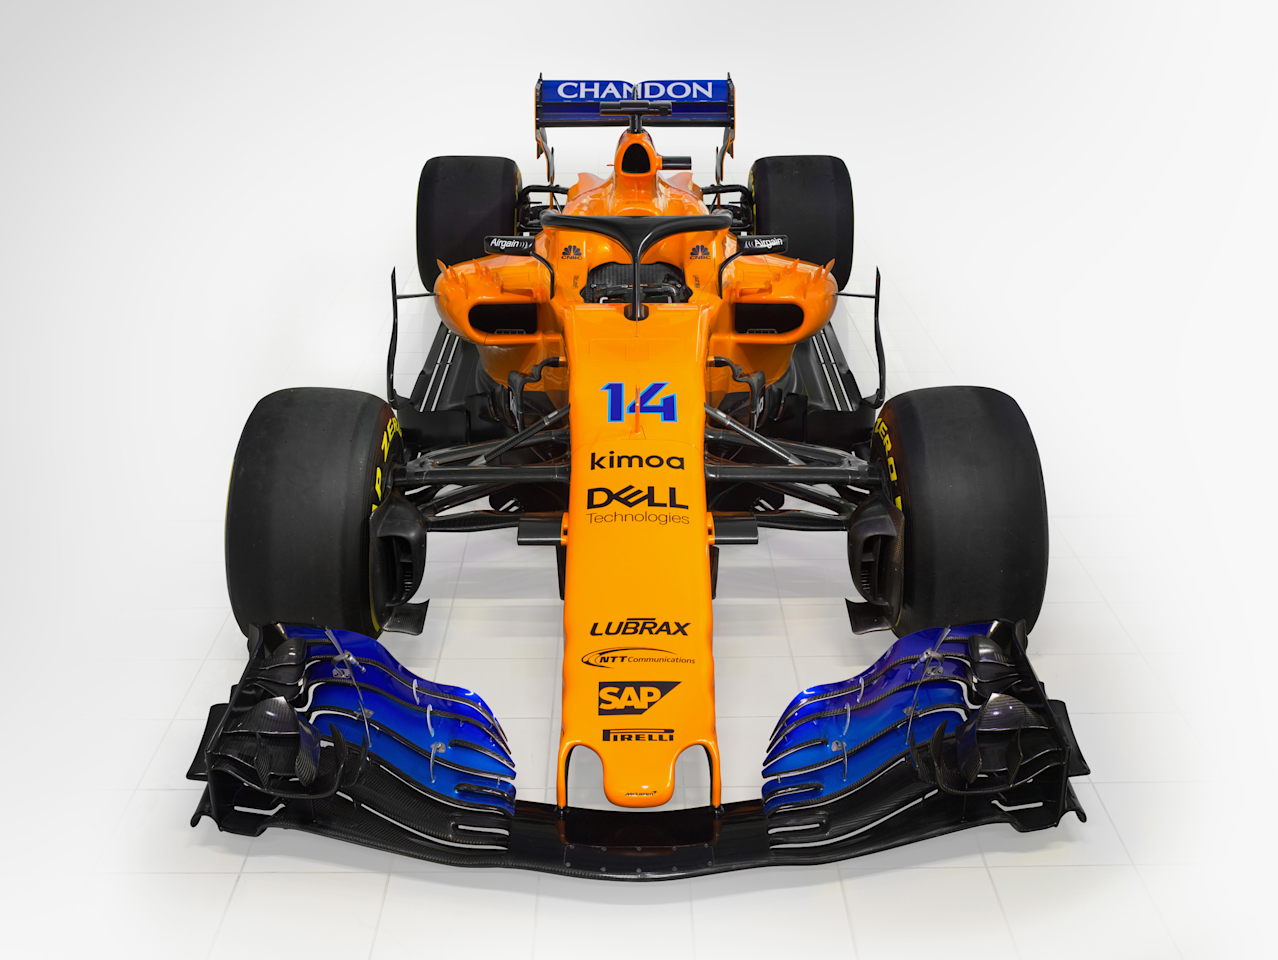 McLaren reveal their new Renault-powered F1 car as Fernando Alonso dreams of a new dawn